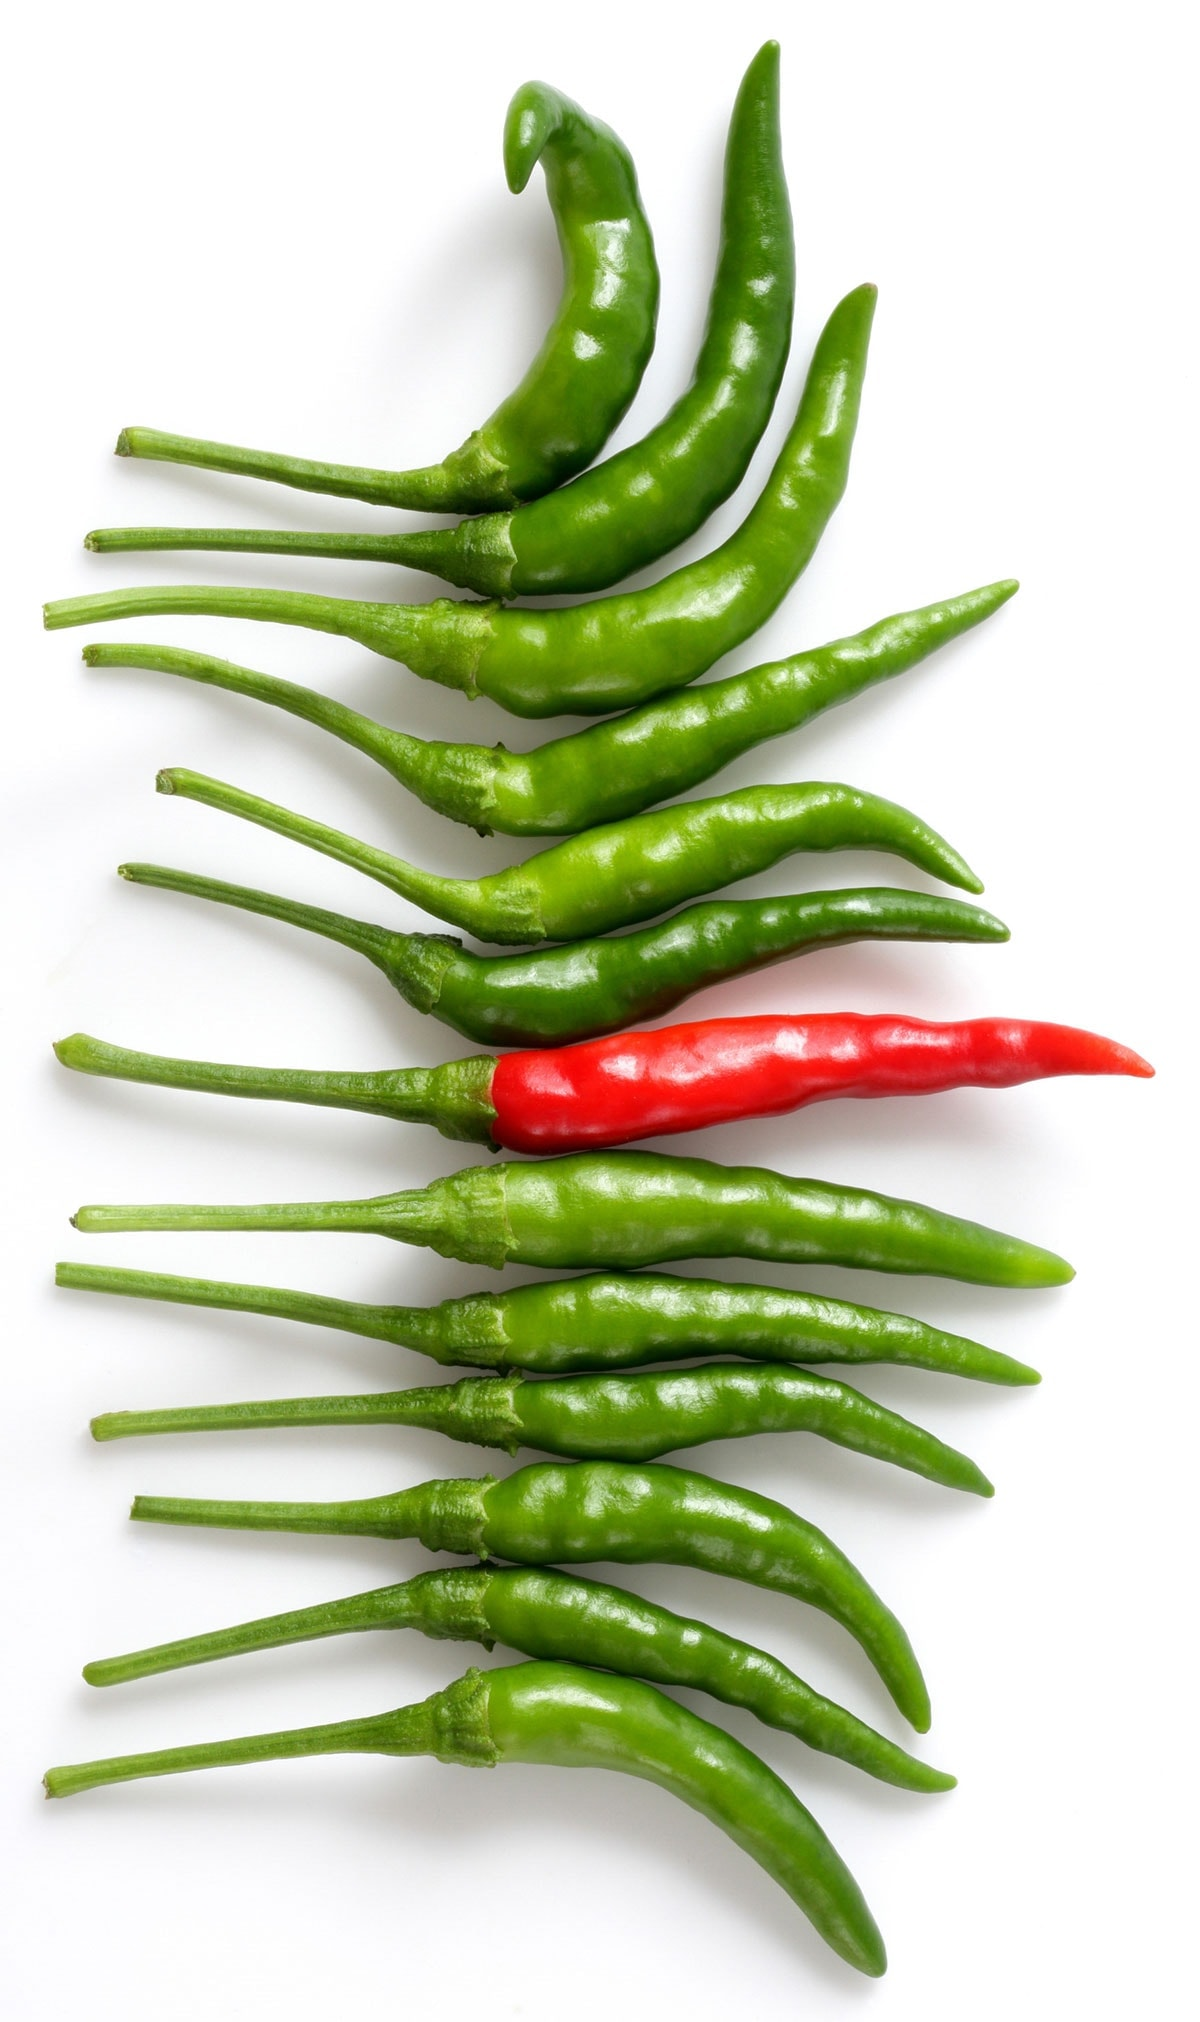 African chili peppers on a white background, green and red pepper